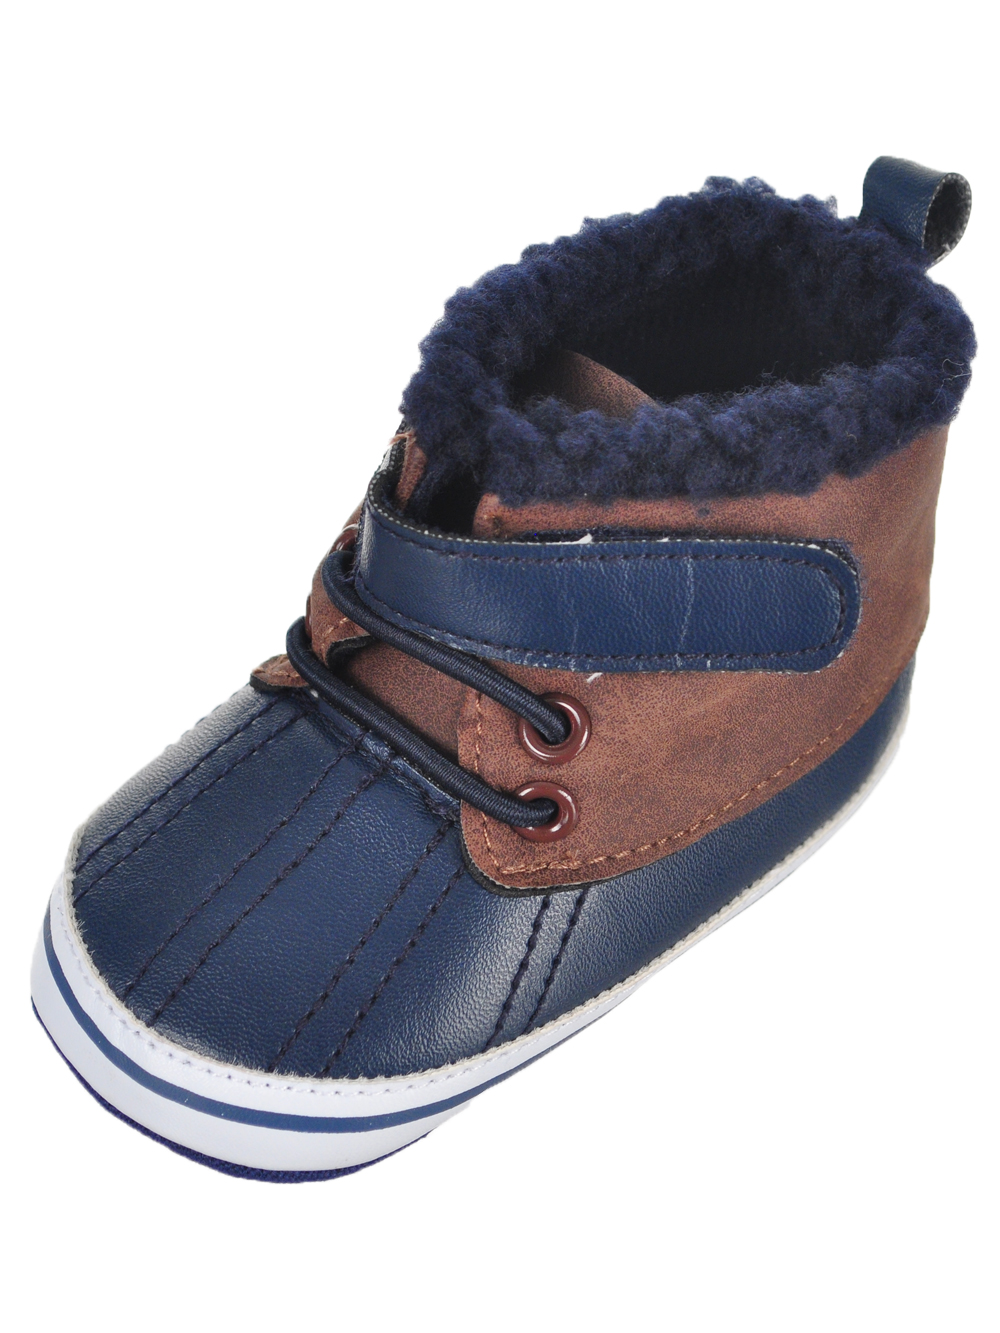 Rising Star Baby Boys' Booties